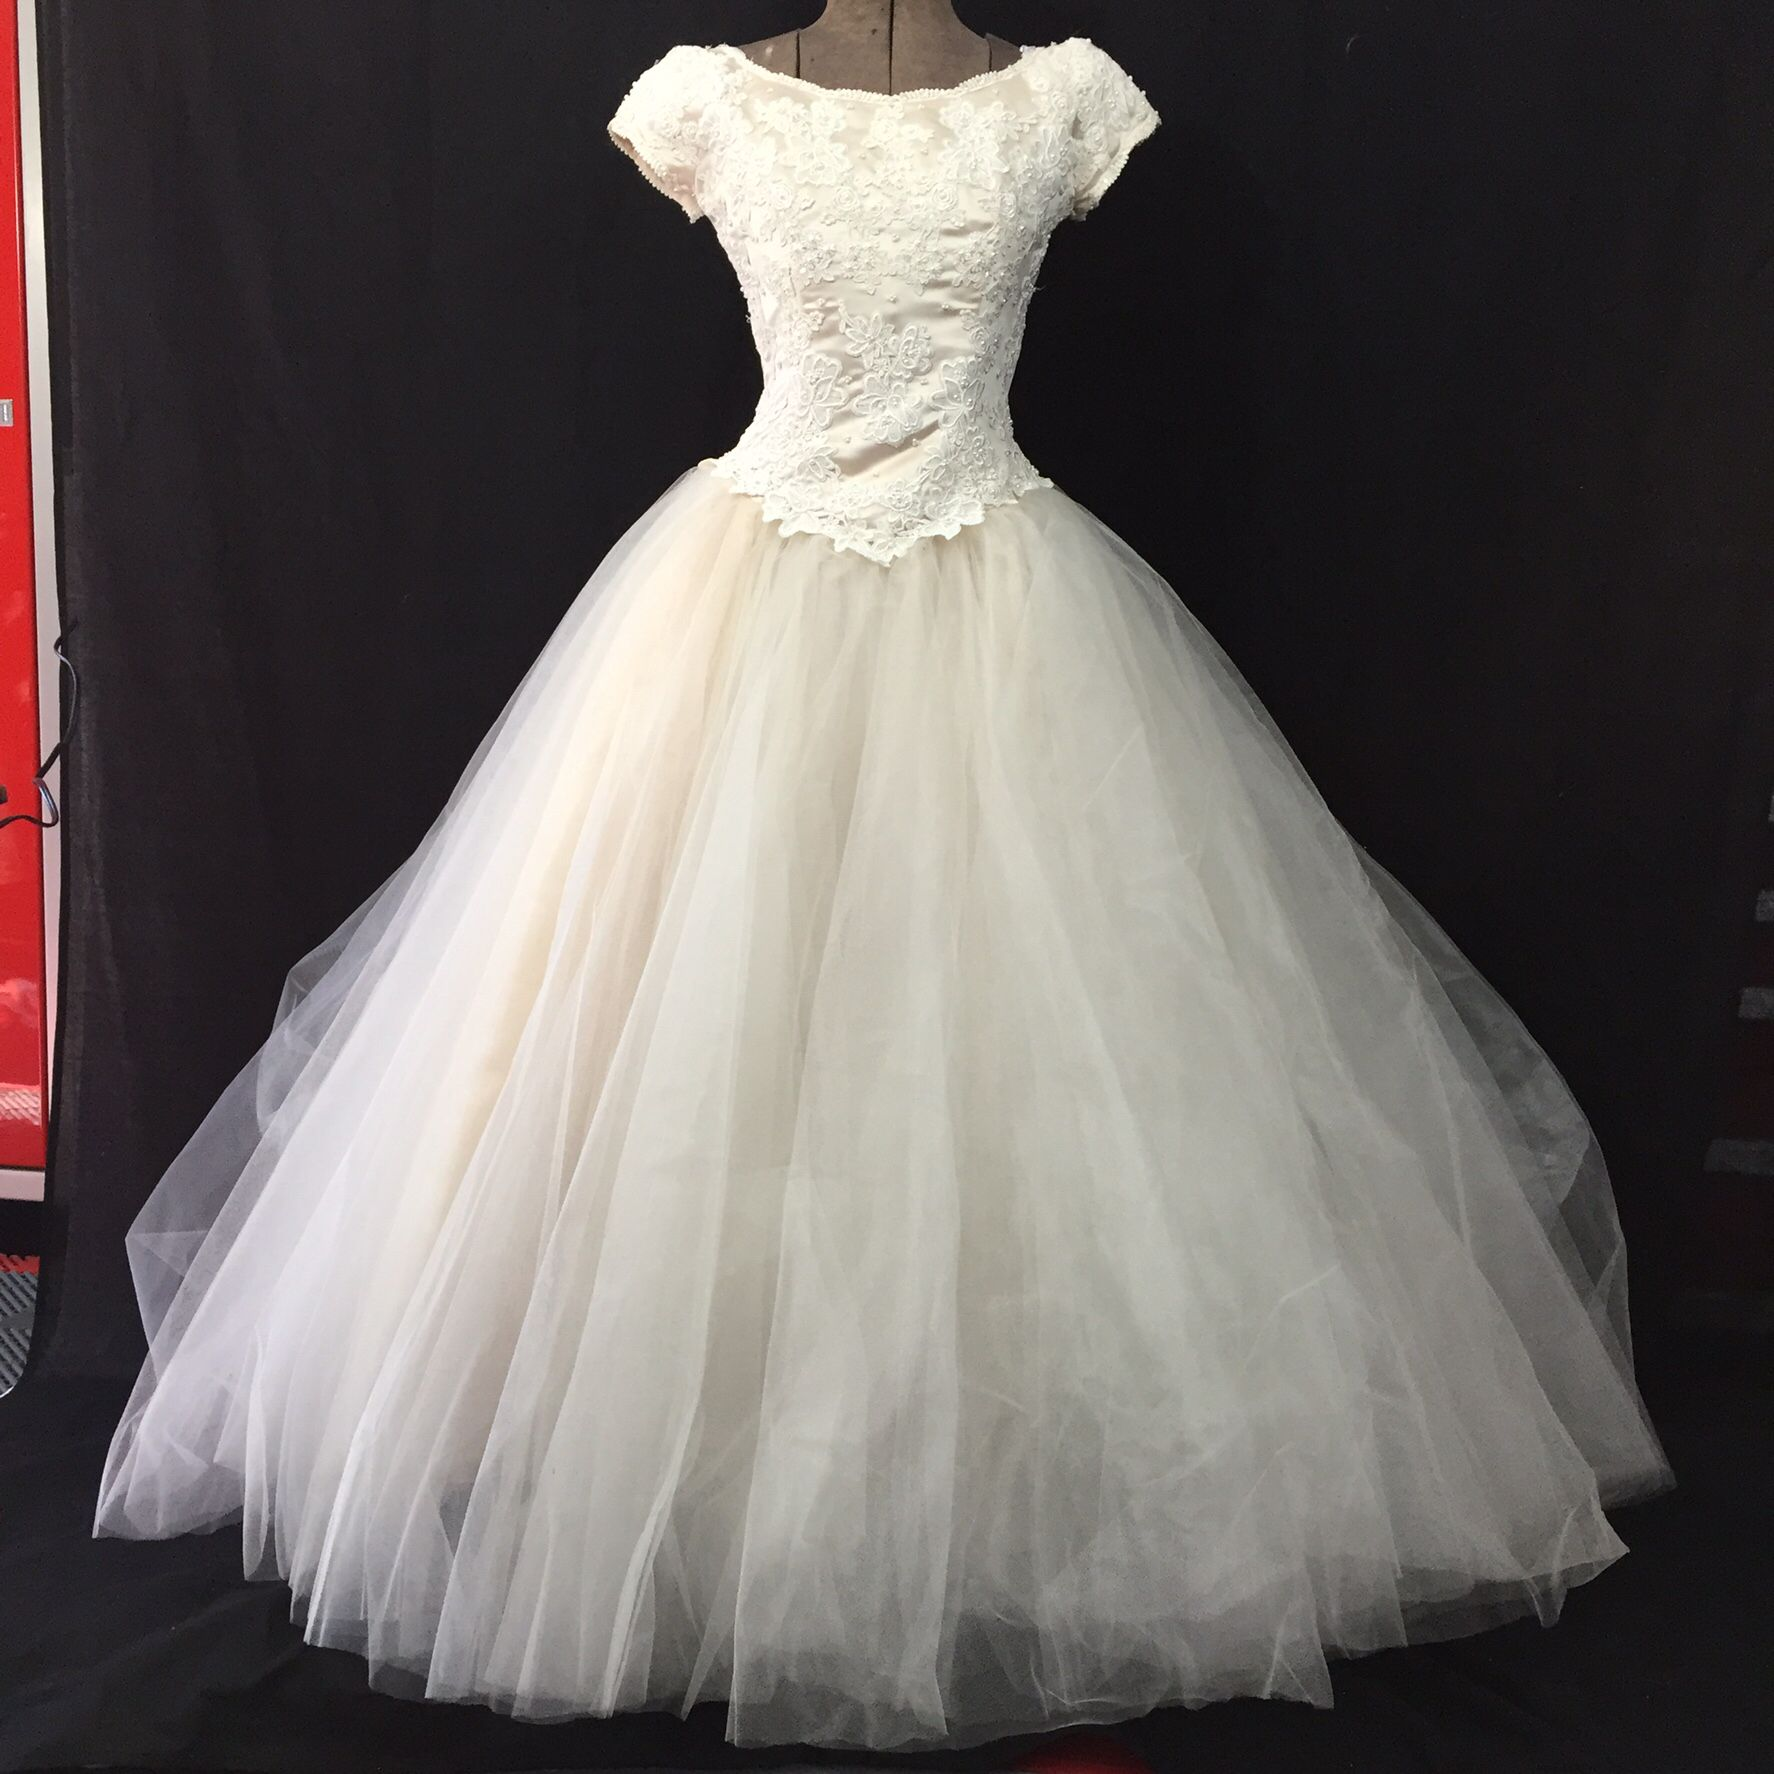 Full skirt blush colored mesh and lace. Boat neck with adorning lace .  www.blythebridalco.com